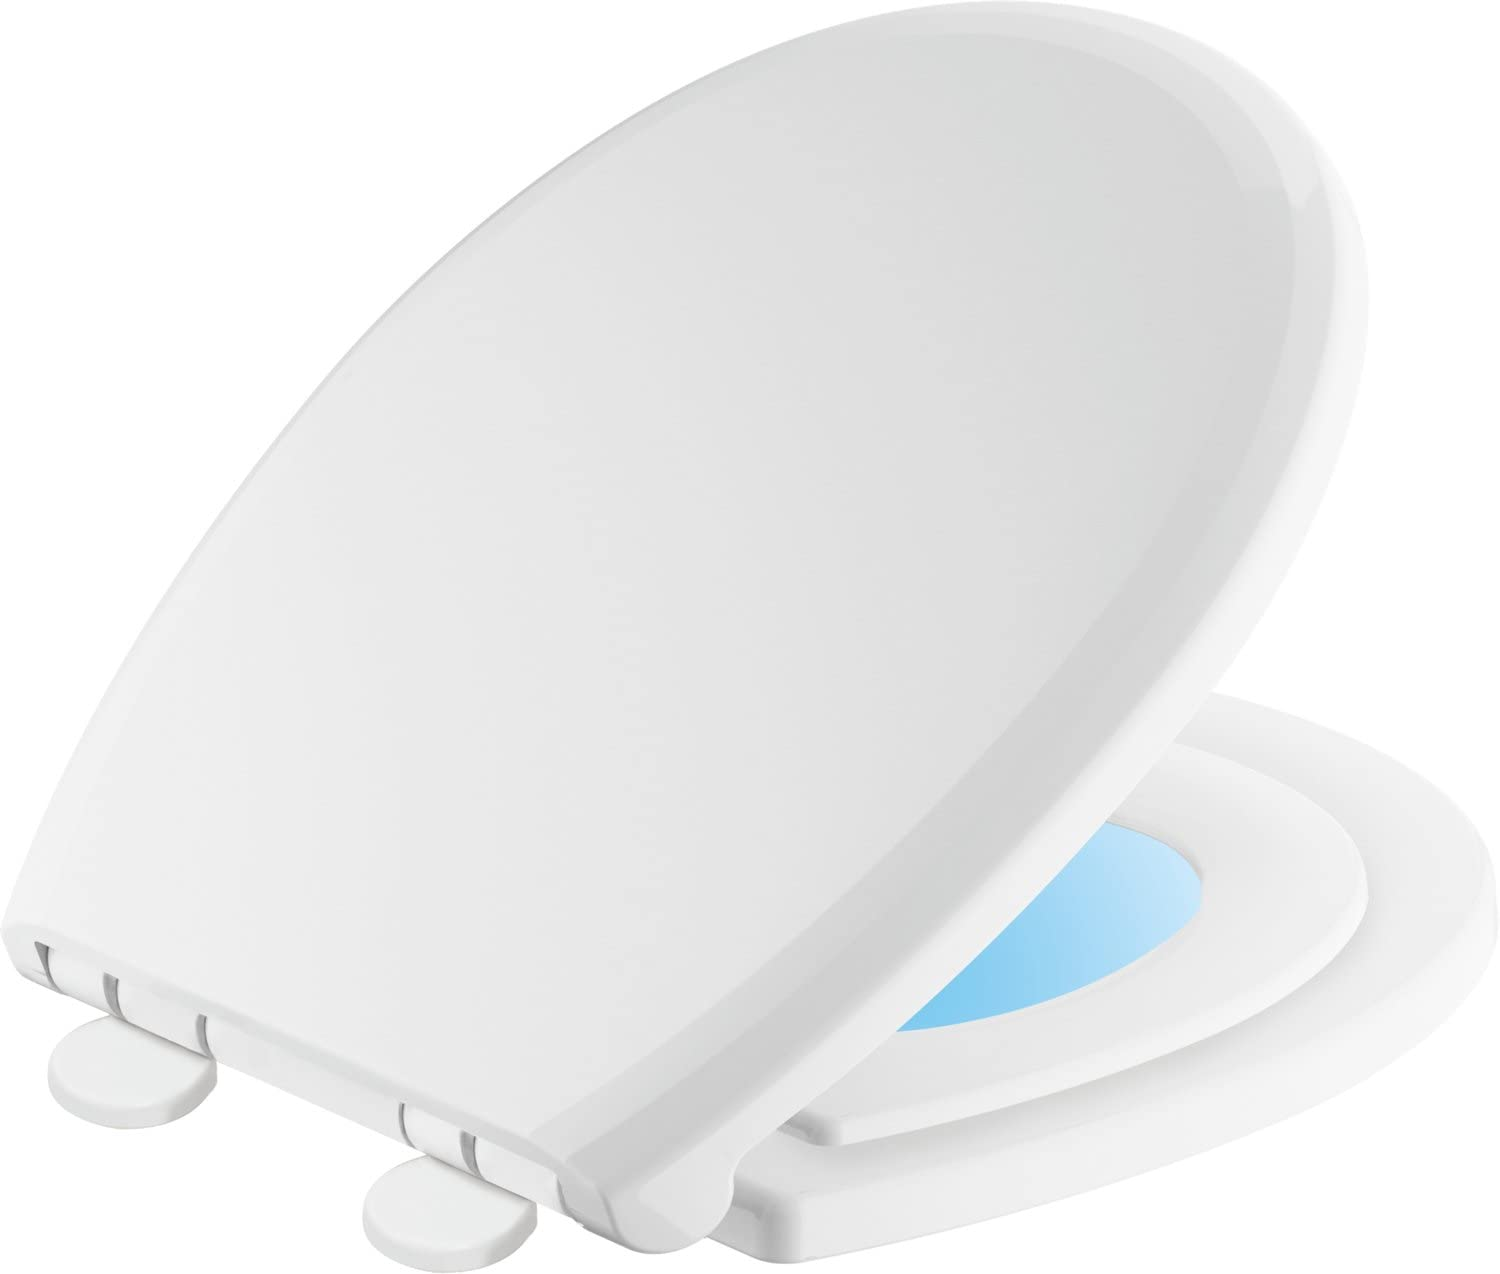 Delta Faucet 823902-N-Wh Sanborne Round Potty Training Nightlight Toilet Seat mit Slow Close und Quick-Release, White